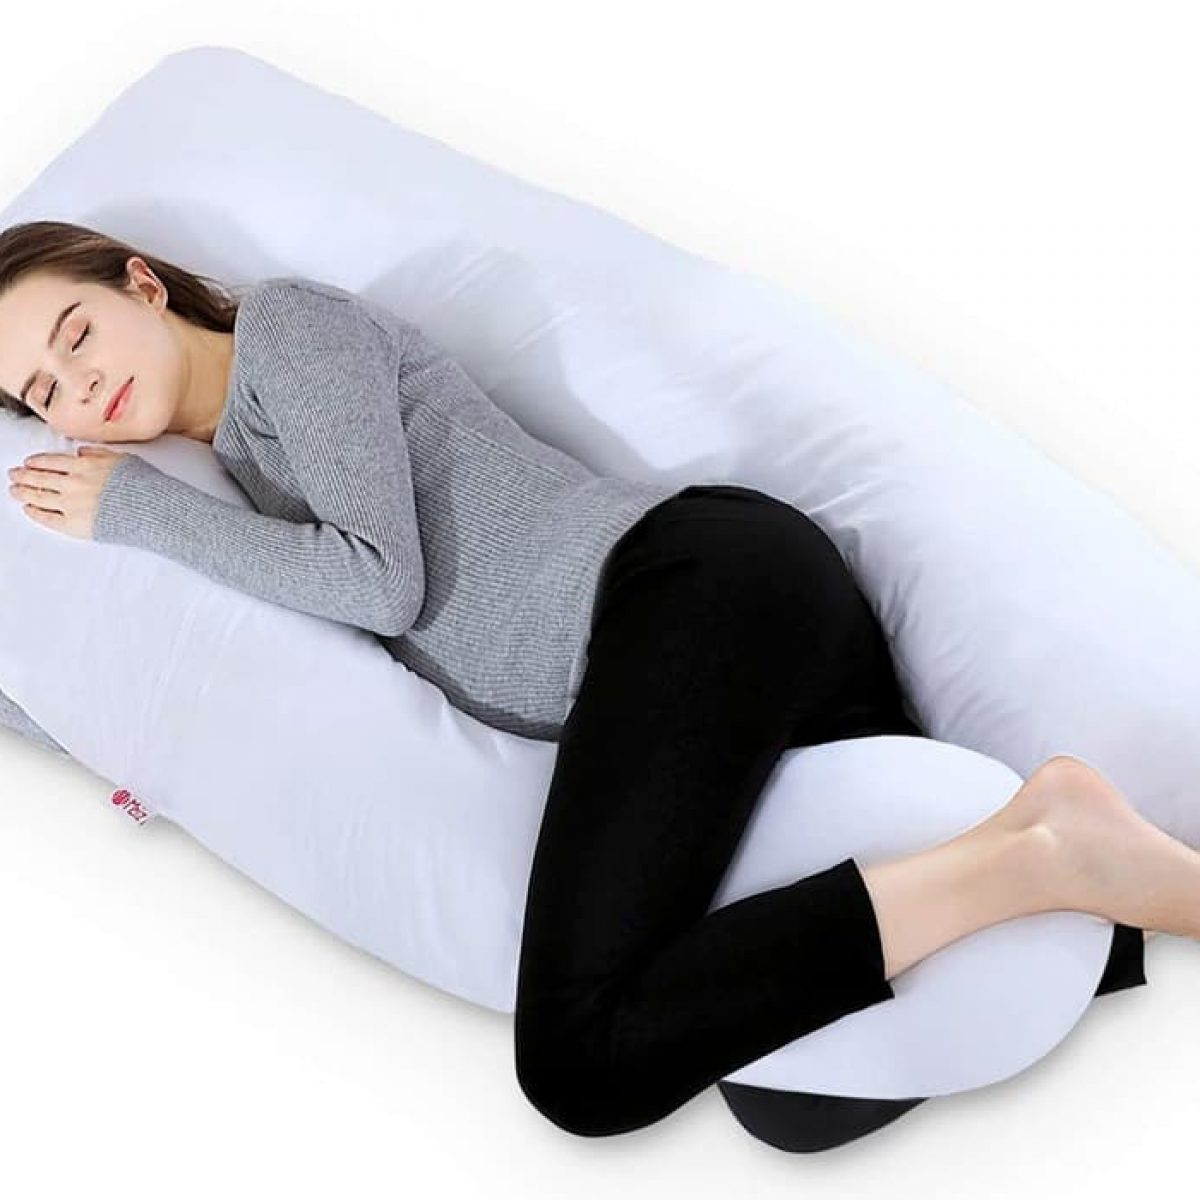 Puredown U Shaped Pregnancy Bed Pillow Maternity Full Body Support Pillow Blue